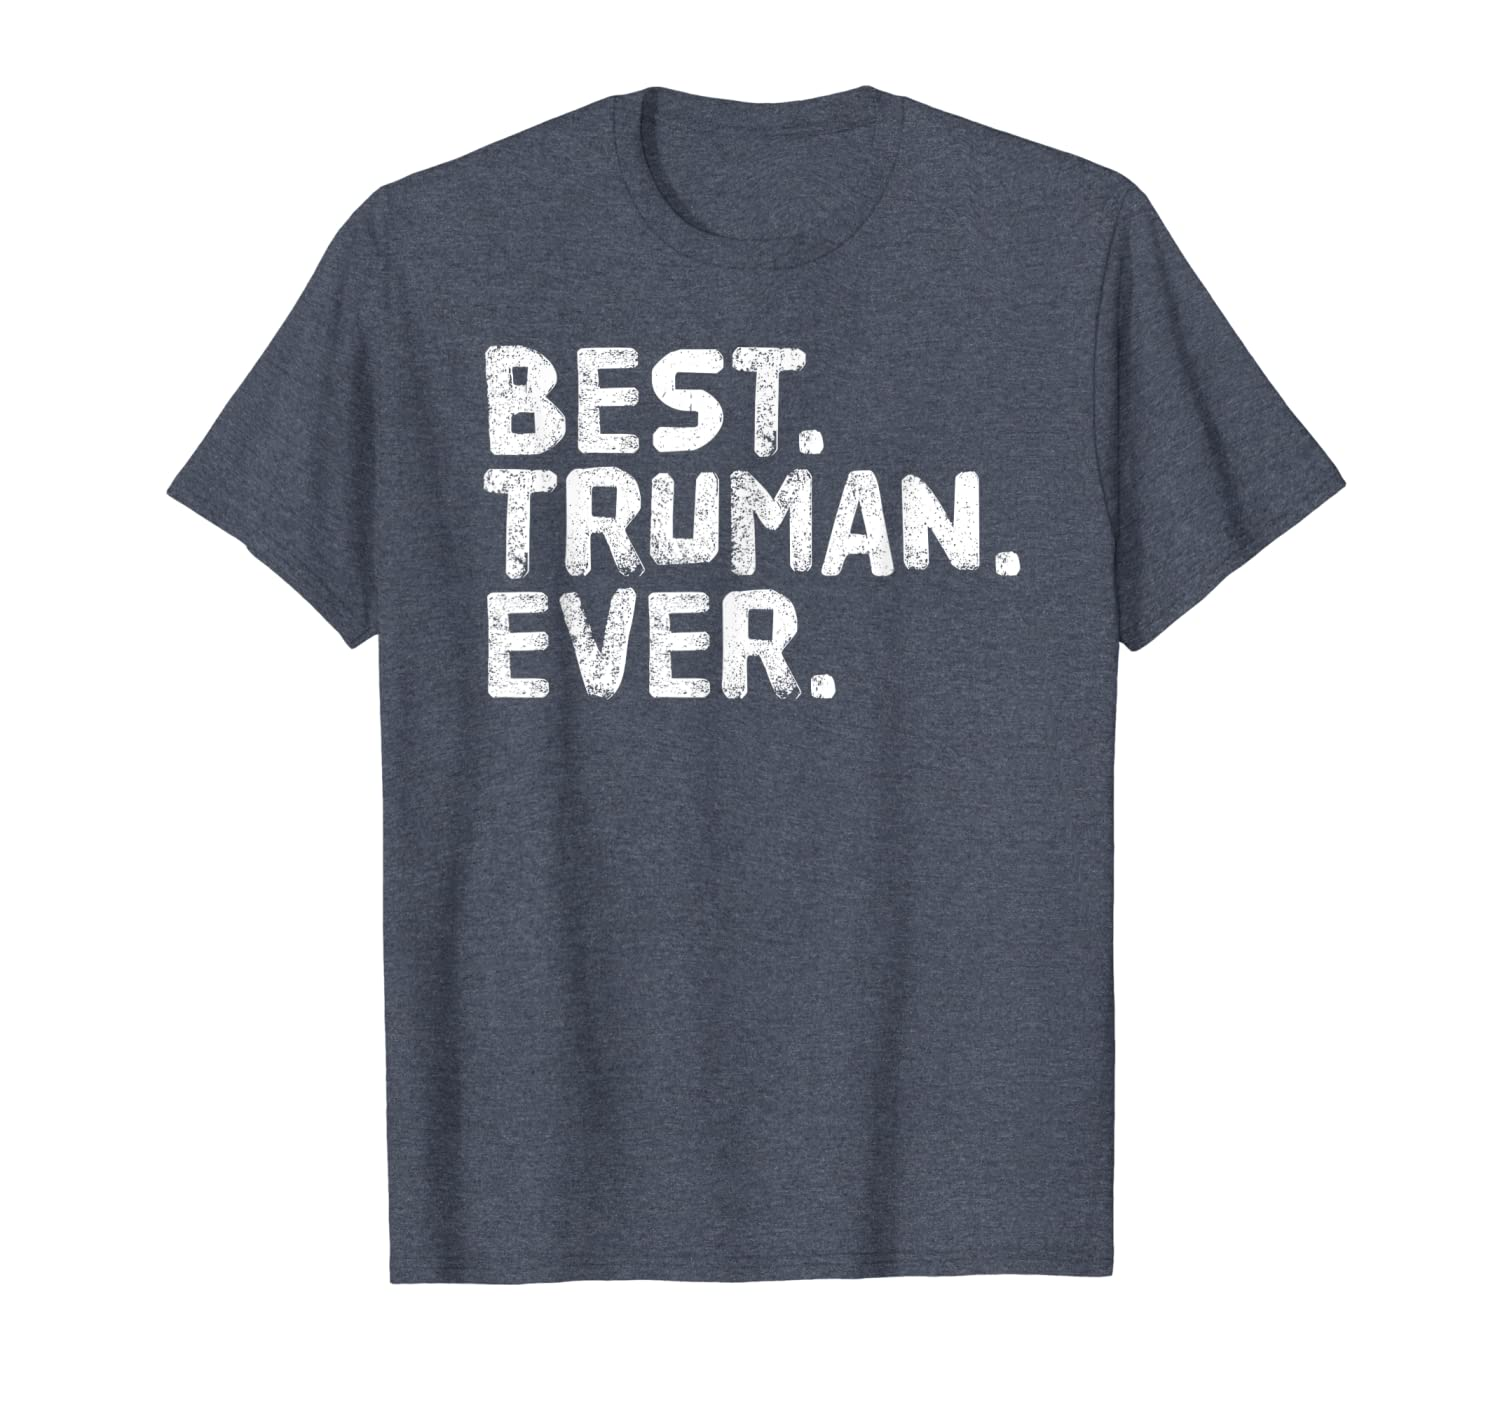 BEST. TRUMAN. EVER. Funny Personalized Name Joke Gift Idea T-Shirt-TH